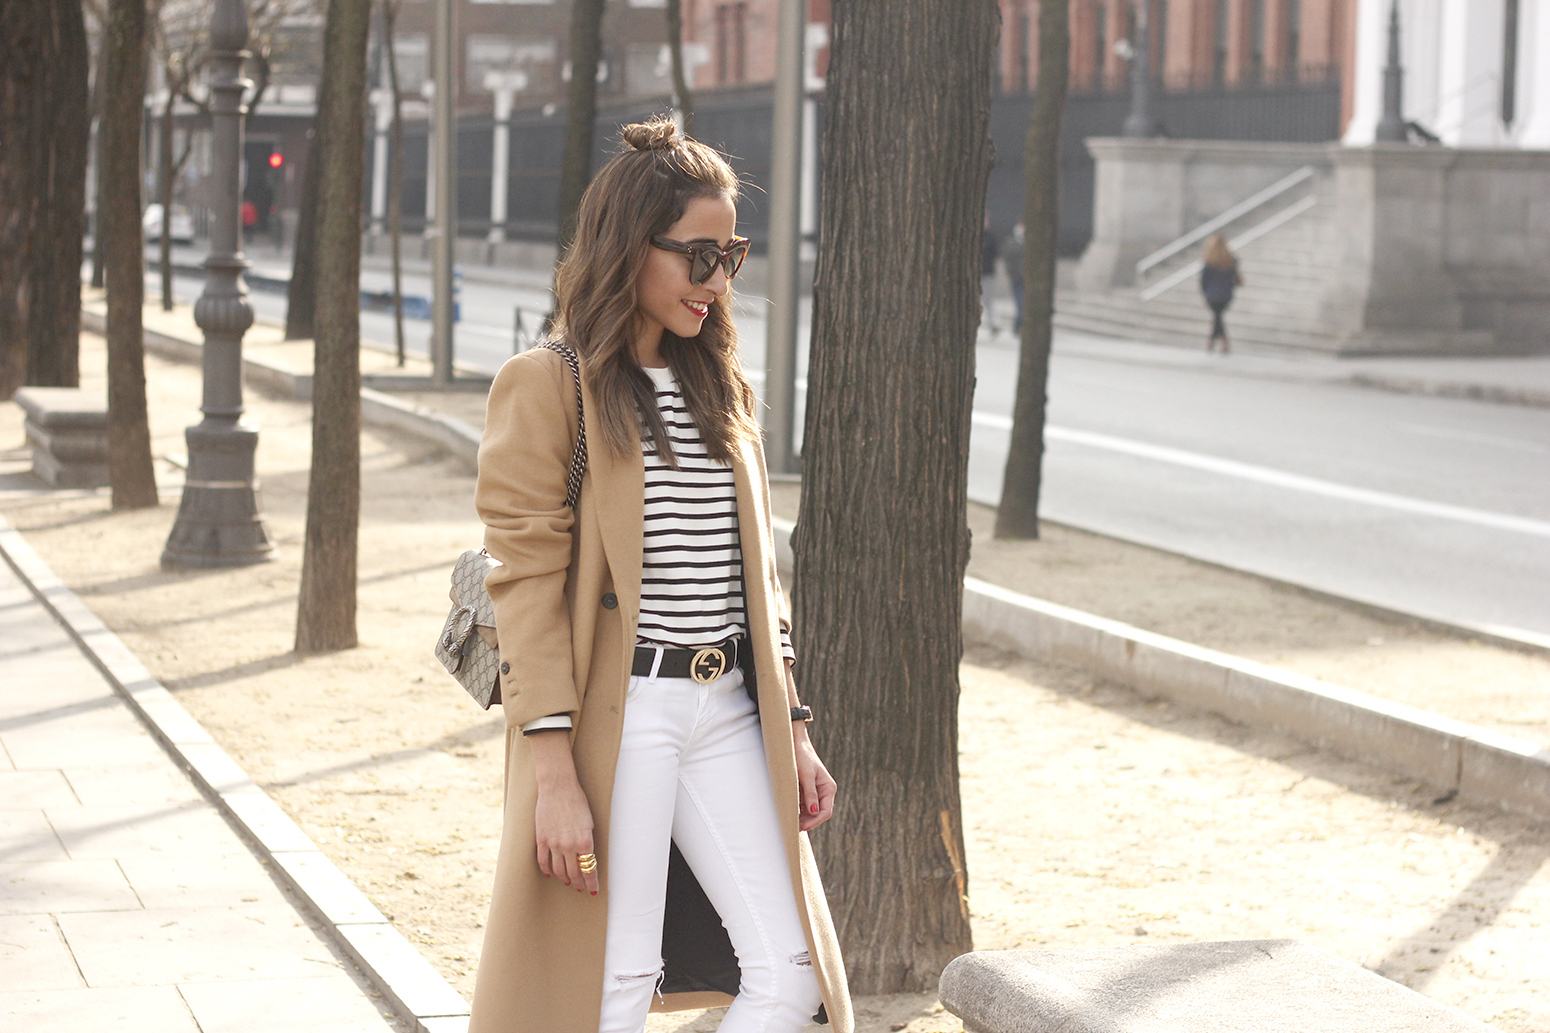 camel coat strieps white ripped jeans black heels uterqüe belt gucci céline sunnies outfit fashion style05